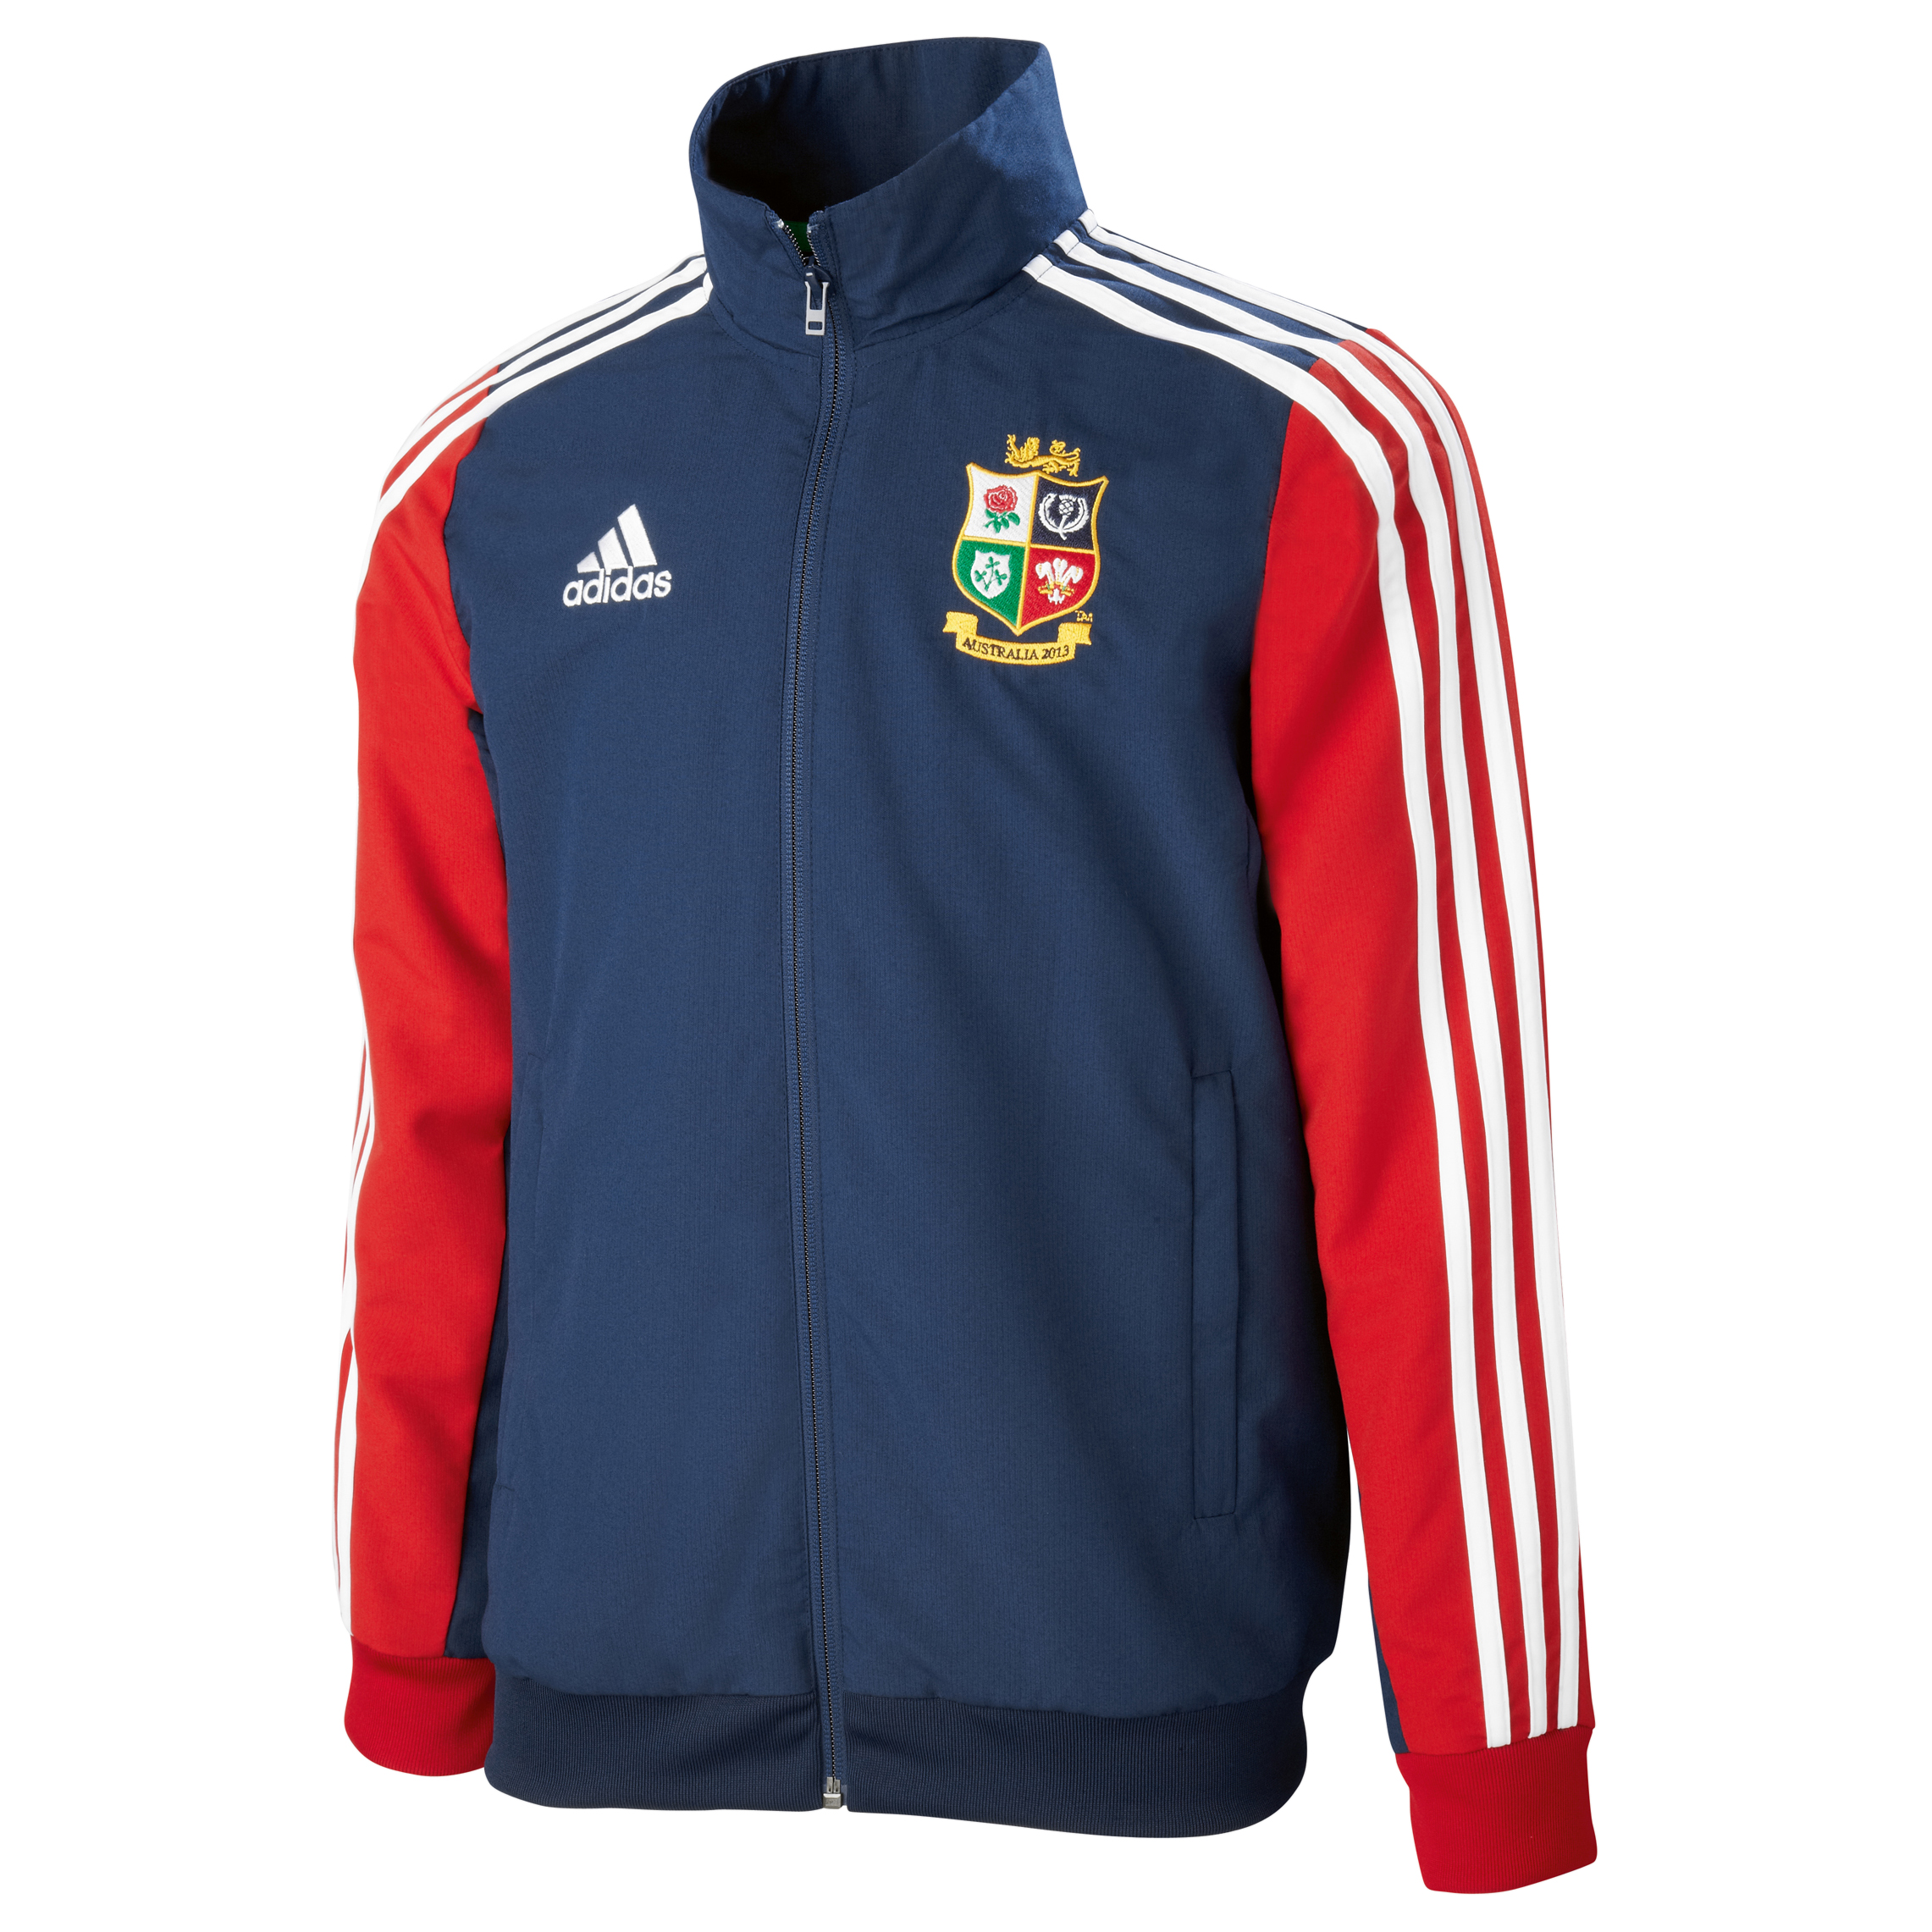 British & Irish Lions Presentation Jacket - Collegiate Navy/University Red/White - Youths